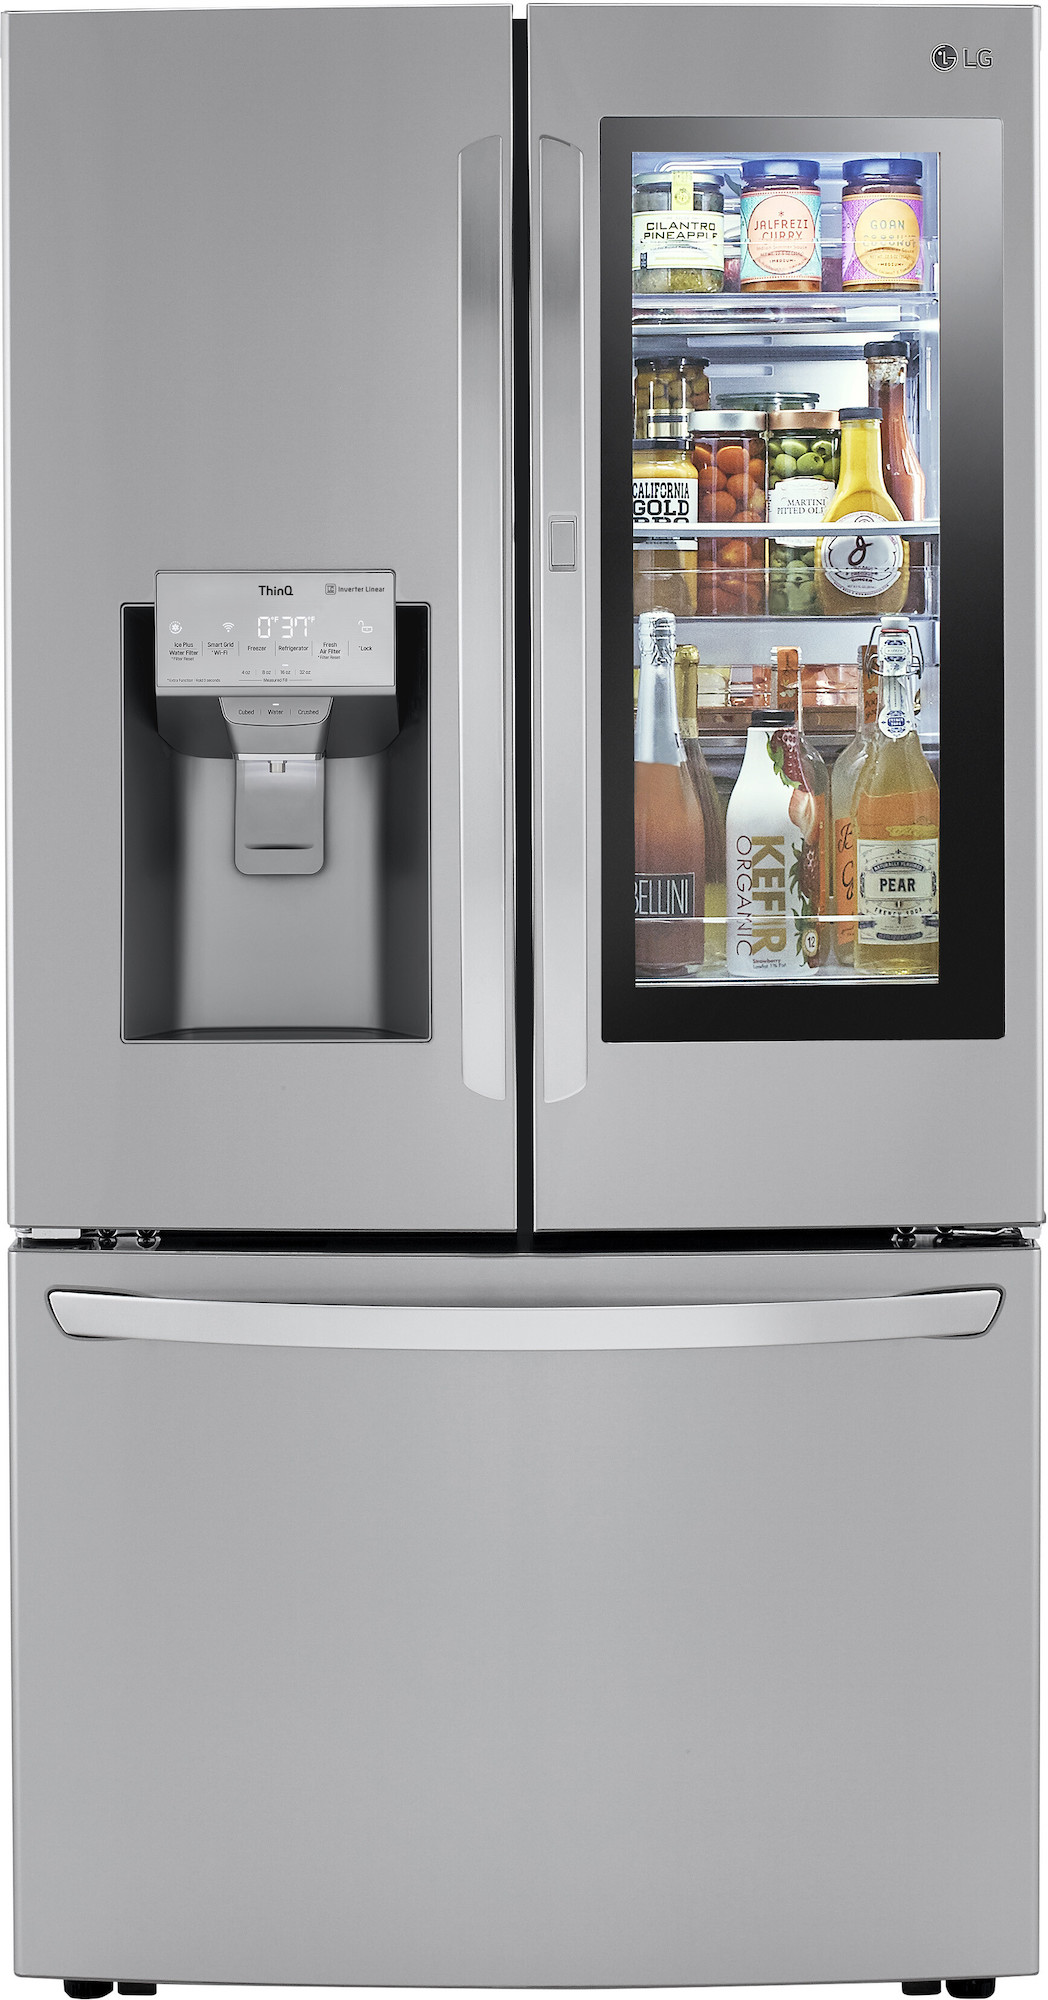 LG French Door Refrigerator with Craft Ice